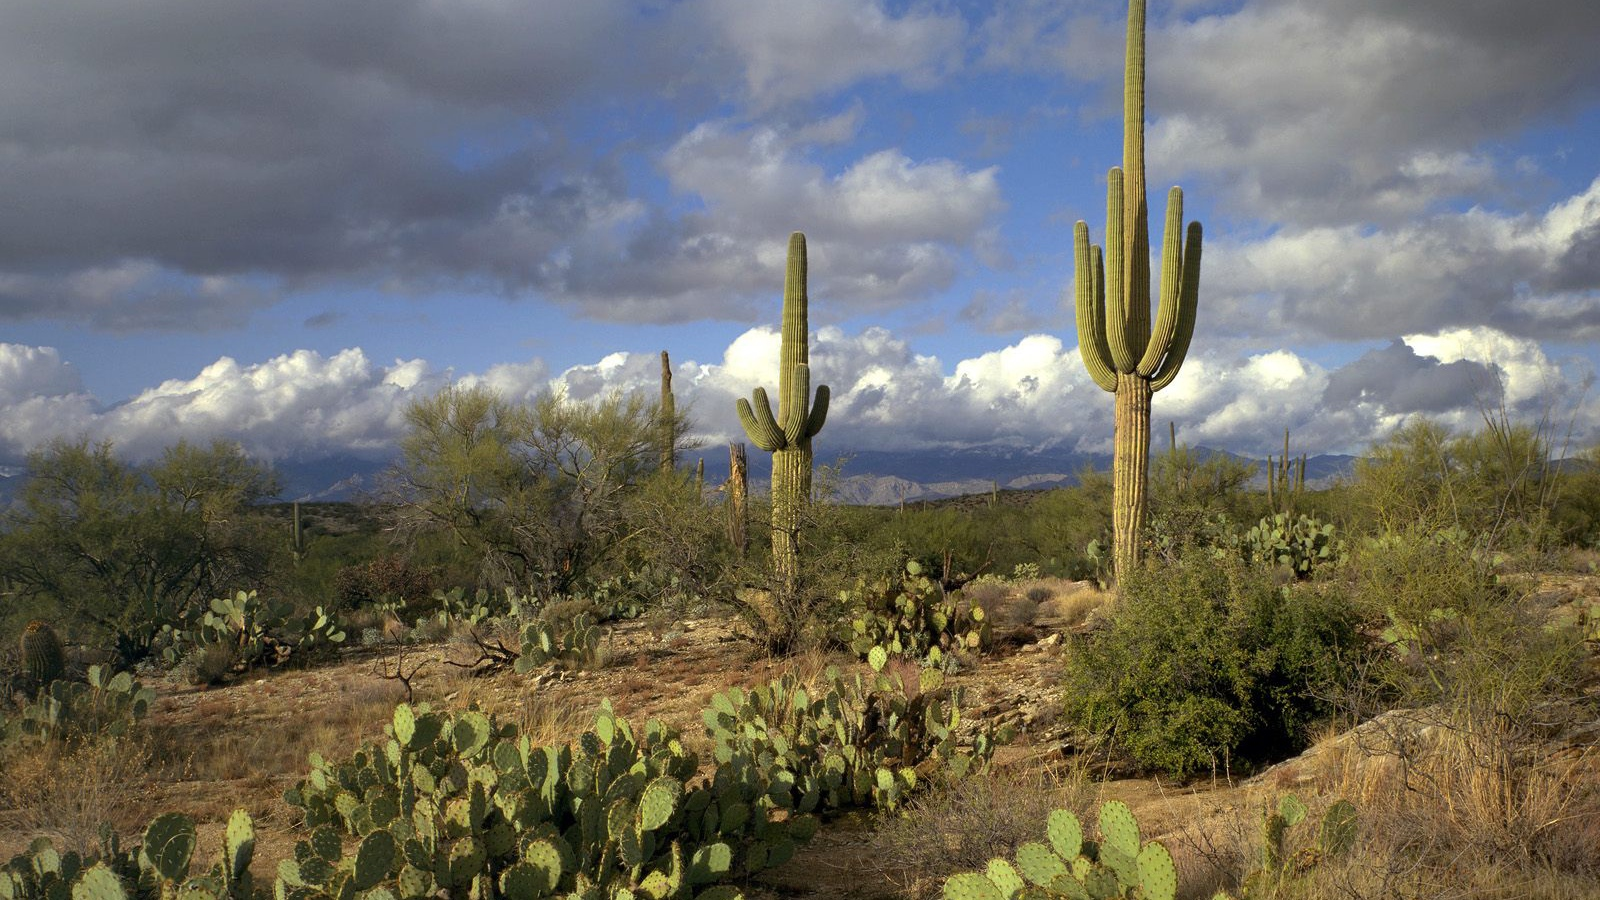 Best 41 Saguaro National Park Wallpaper on HipWallpaper 1600x900